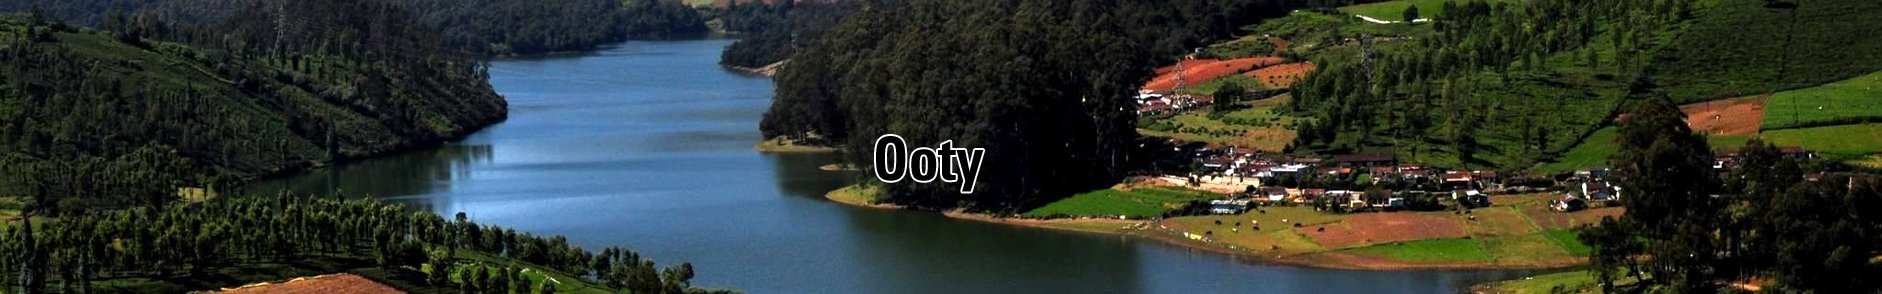 ooty Hill Station Holiday Packages